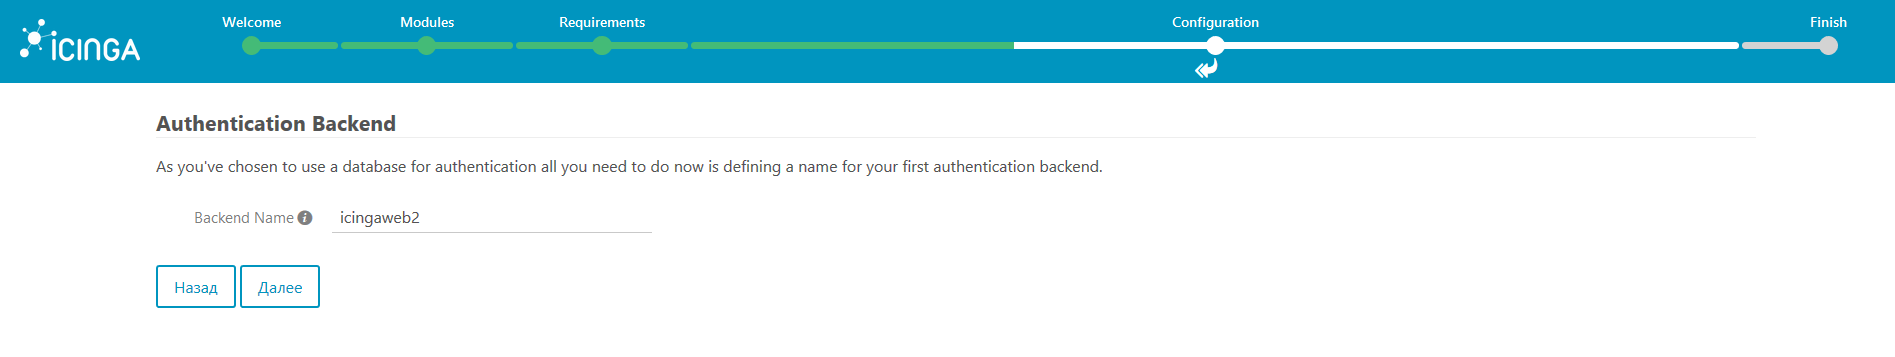 Authentication Backend